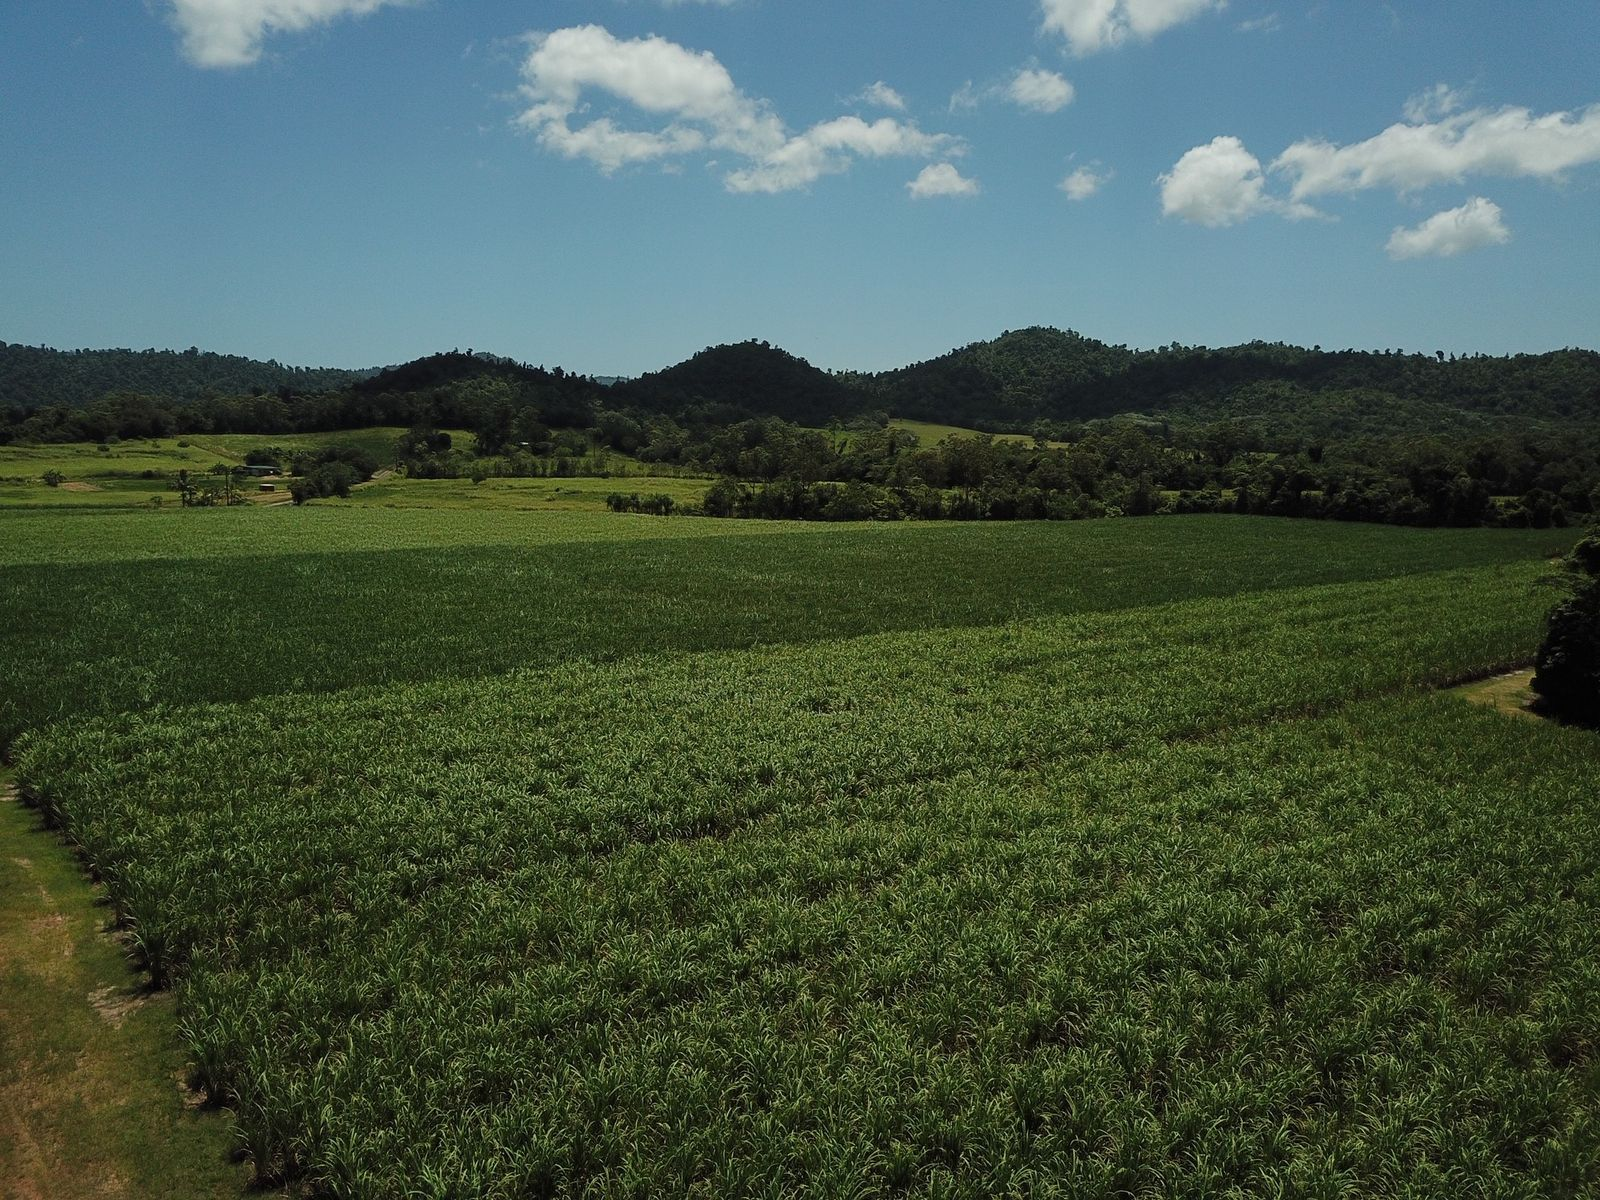 LOT 3/2223 INNISFAIL-JAPOON ROAD, Bombeeta, QLD 4871